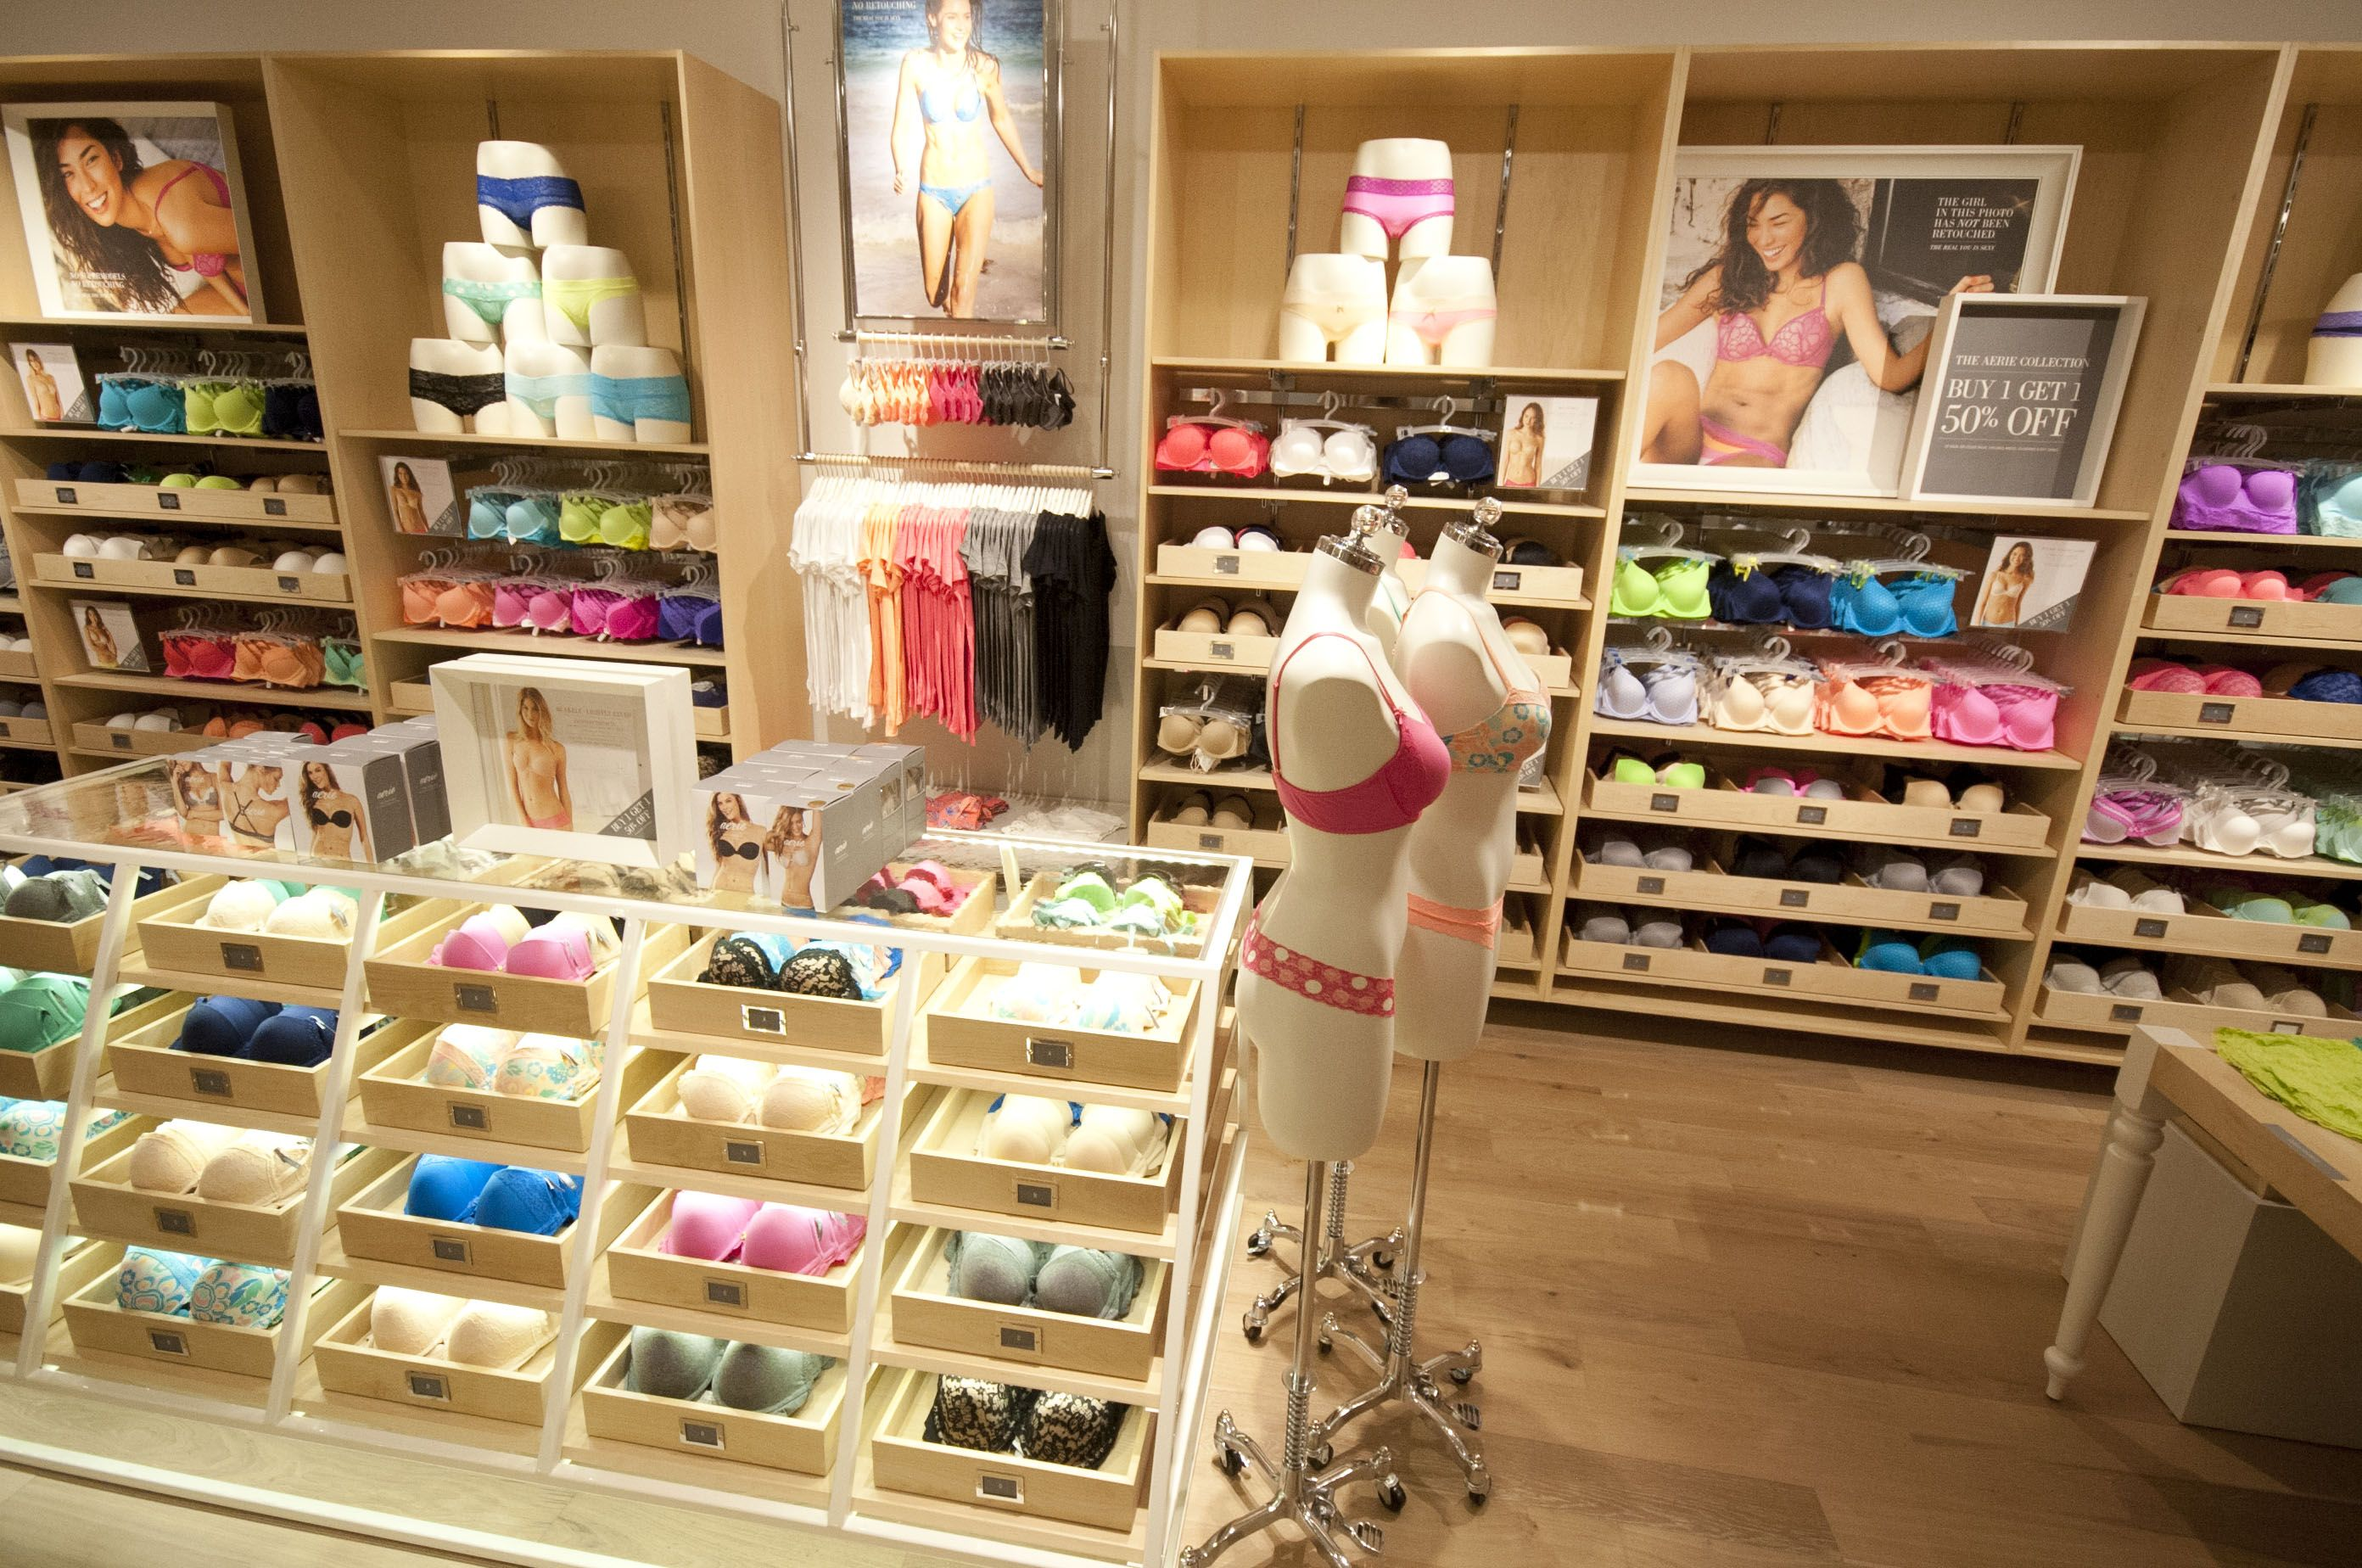 91 Confessions Of An Aerie Bra Expert Odyssey Articles Lingerie